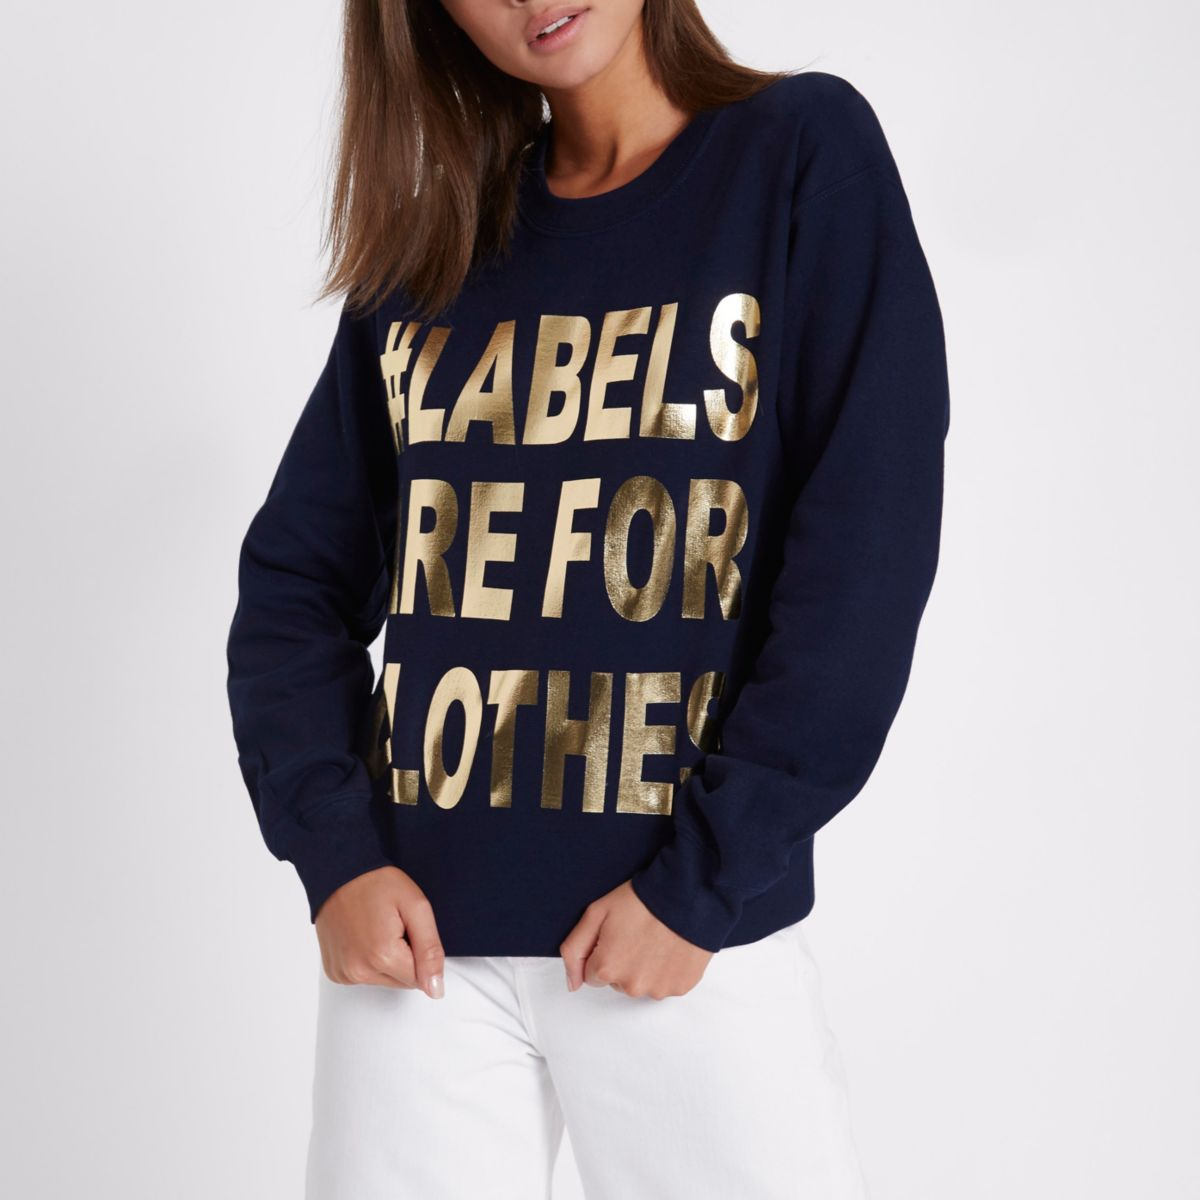 Navy Ditch the Label charity sweatshirt